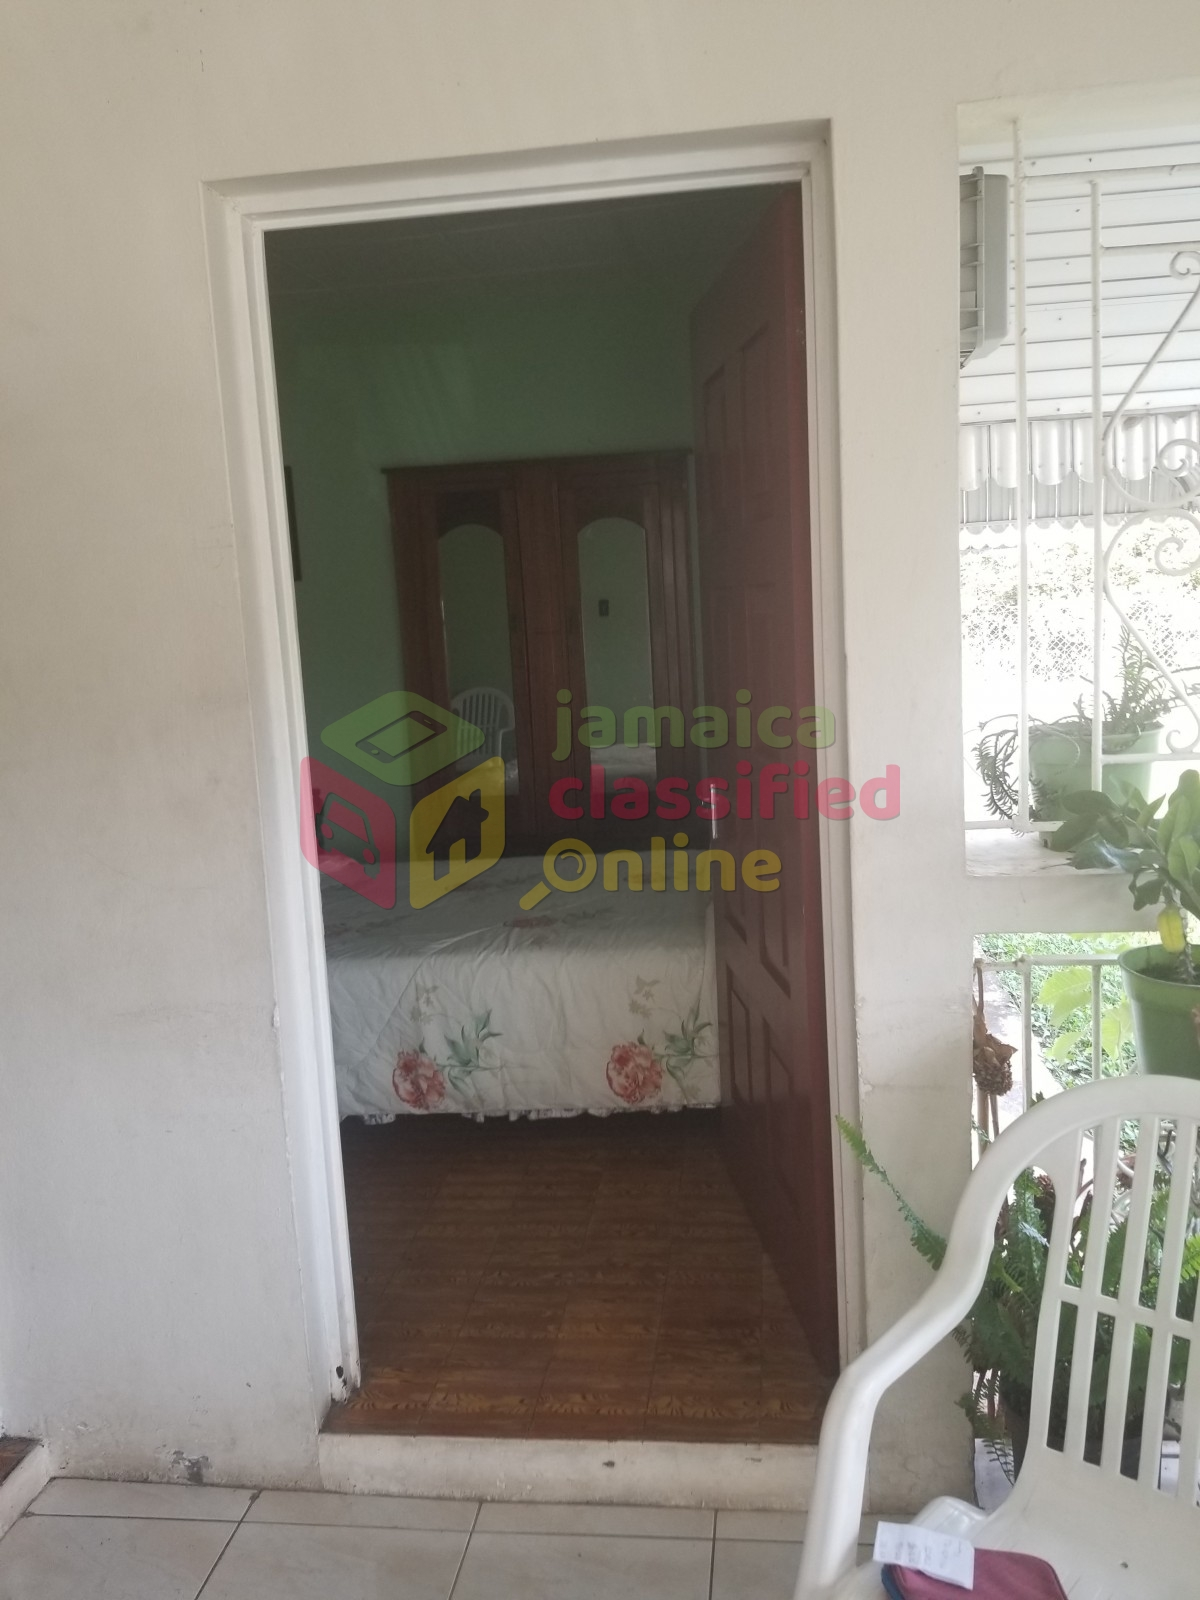 Furnished 1 Bedroom Apartment For Rent In Mandeville: Furnished 1 Bedroom For Rent In Molynes/Hughenden Kingston